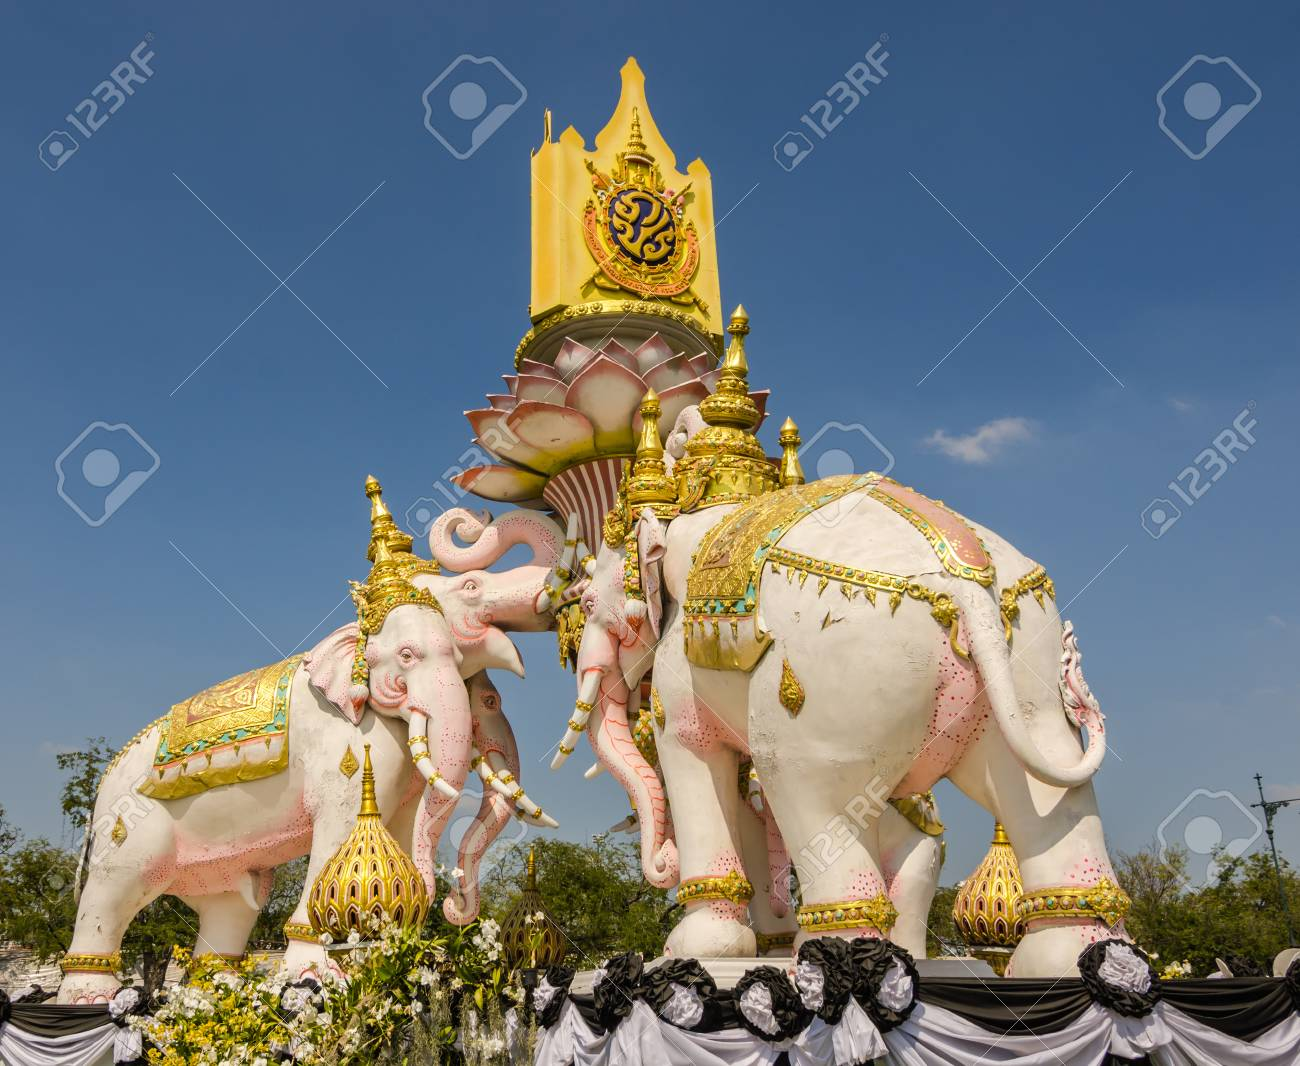 Three Head Elephant Present Symbol The Last King In Front Grand